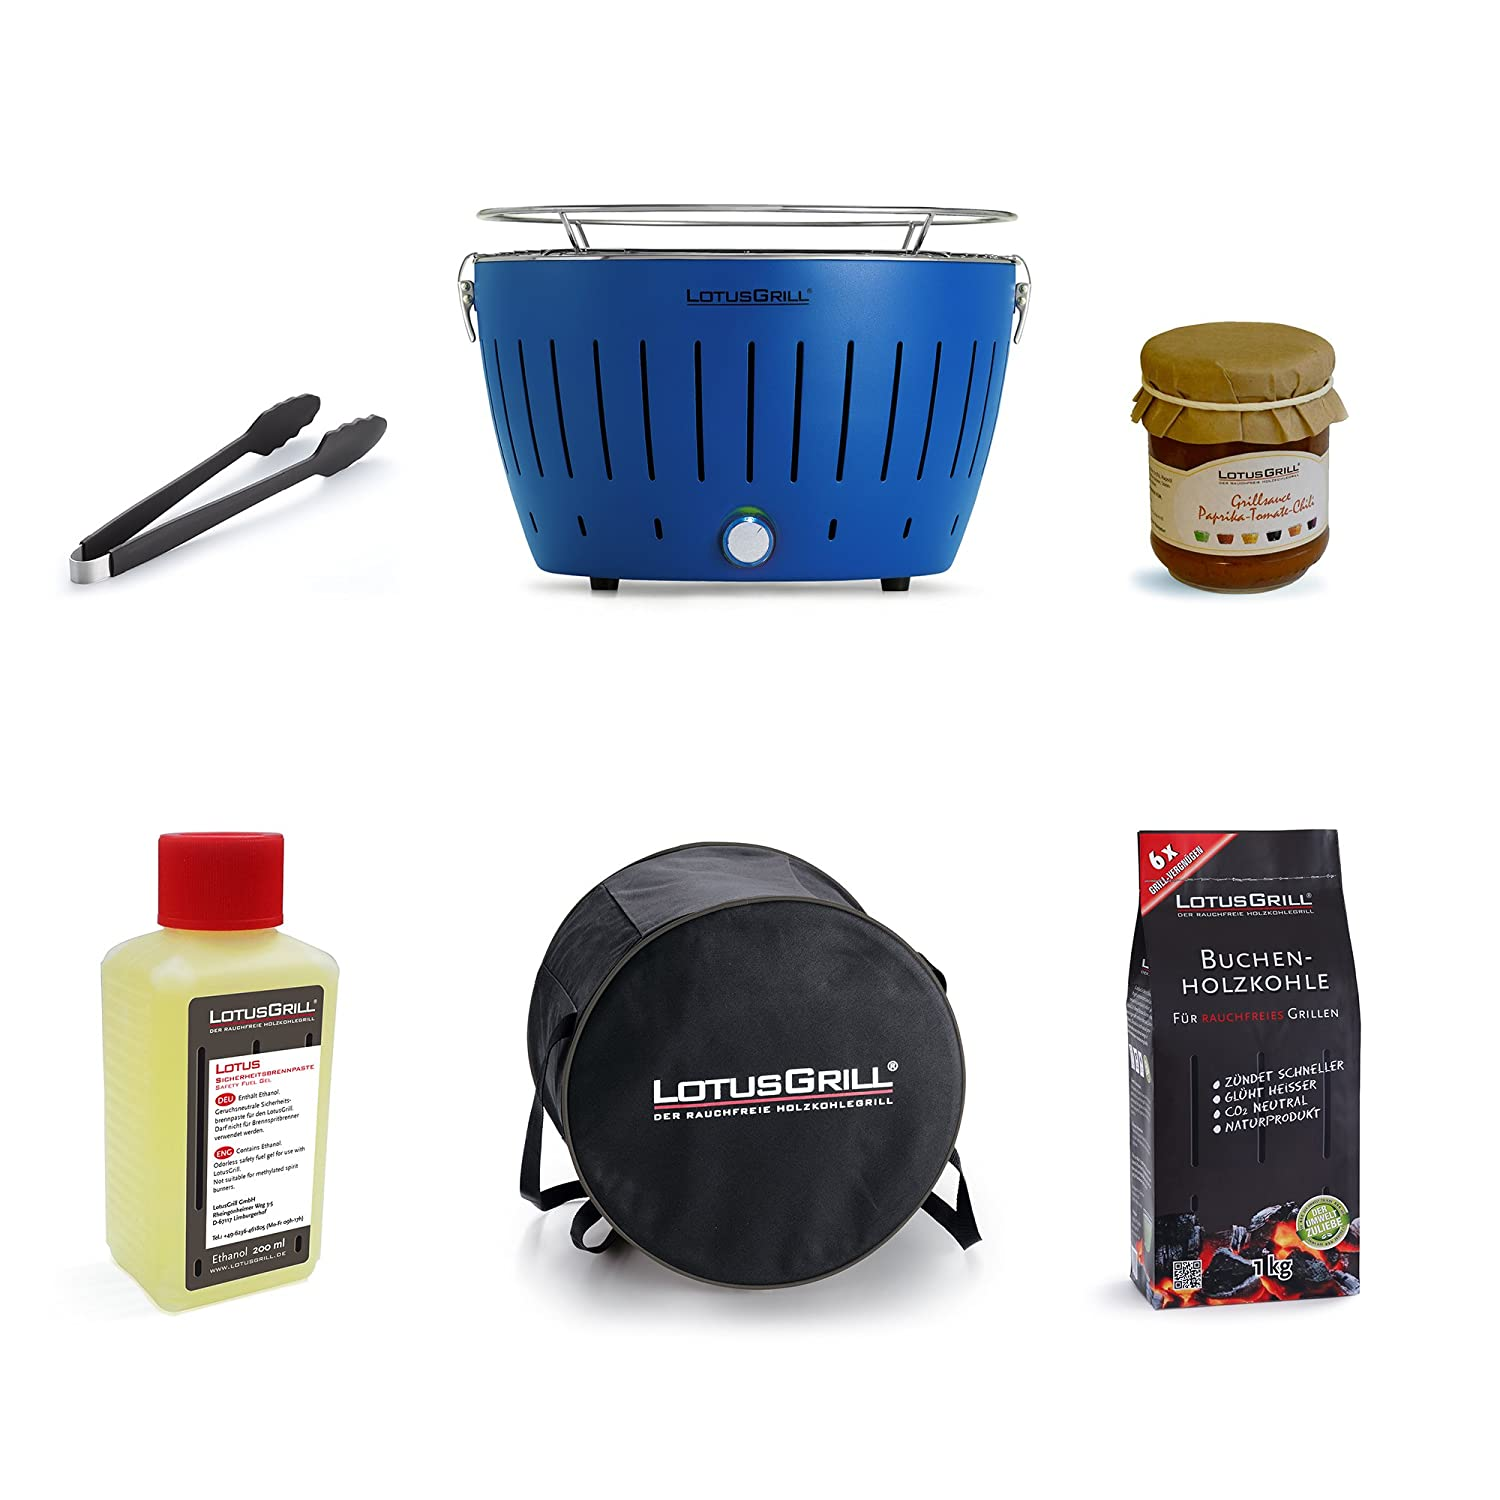 LotusGrill Starter Kit 1 x Flame Red LotusGrill, 1 x Beech Charcoal 1 kg, 1 x Lighting Gel 200 ml, 1Flame Red LotusGrill Grill Tongs, 1 x Carrying Case, 1 x LotusGrill Special Grill Sauce –Smoke-Free Charcoal Tabletop Grill / Grill only the latest techn